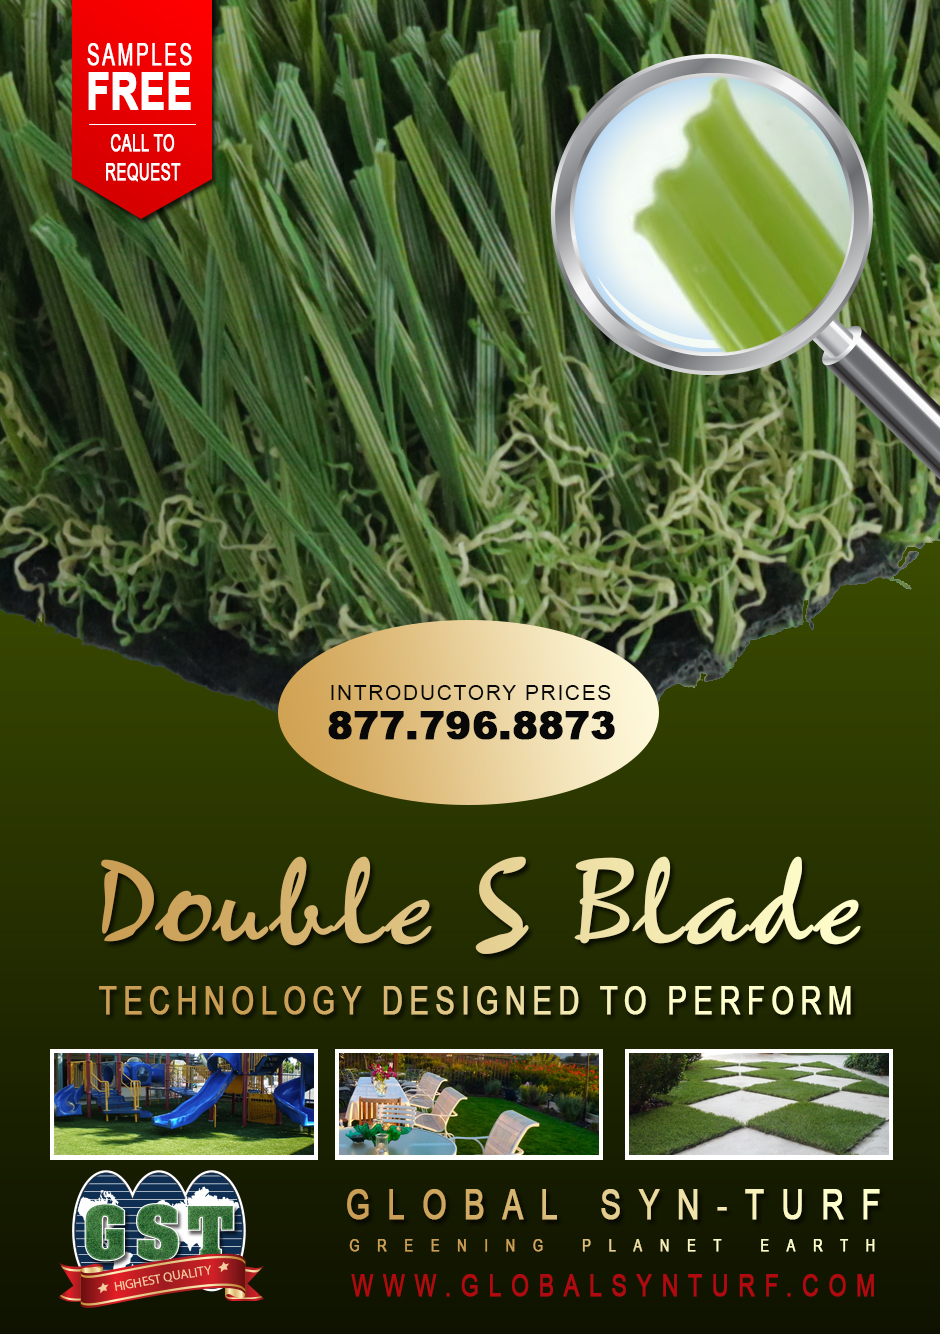 outdoorcarpet Global Syn-Turf Launches Premium Double S Blade Artificial Grass Technology